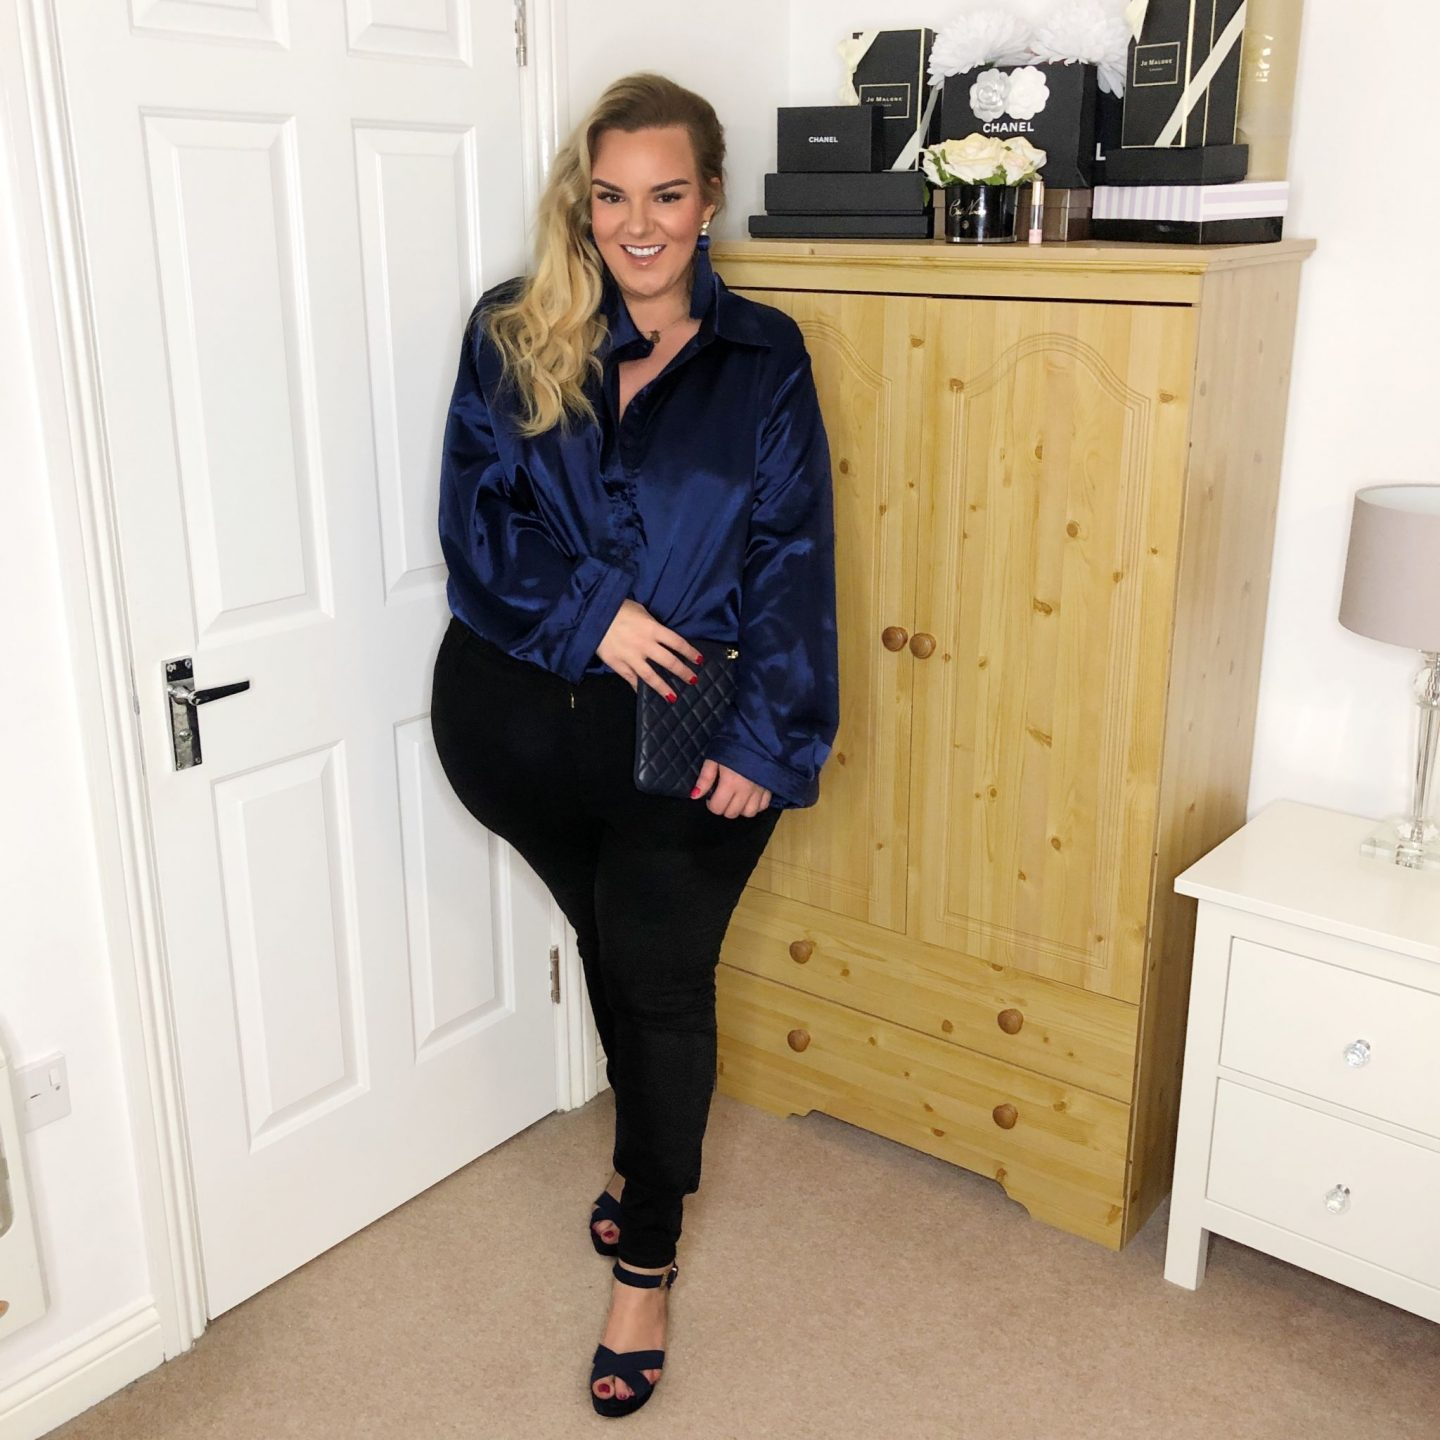 WhatLauraLoves UK Plus Size Blogger PrettyLittleThing Navy Satin Shirt